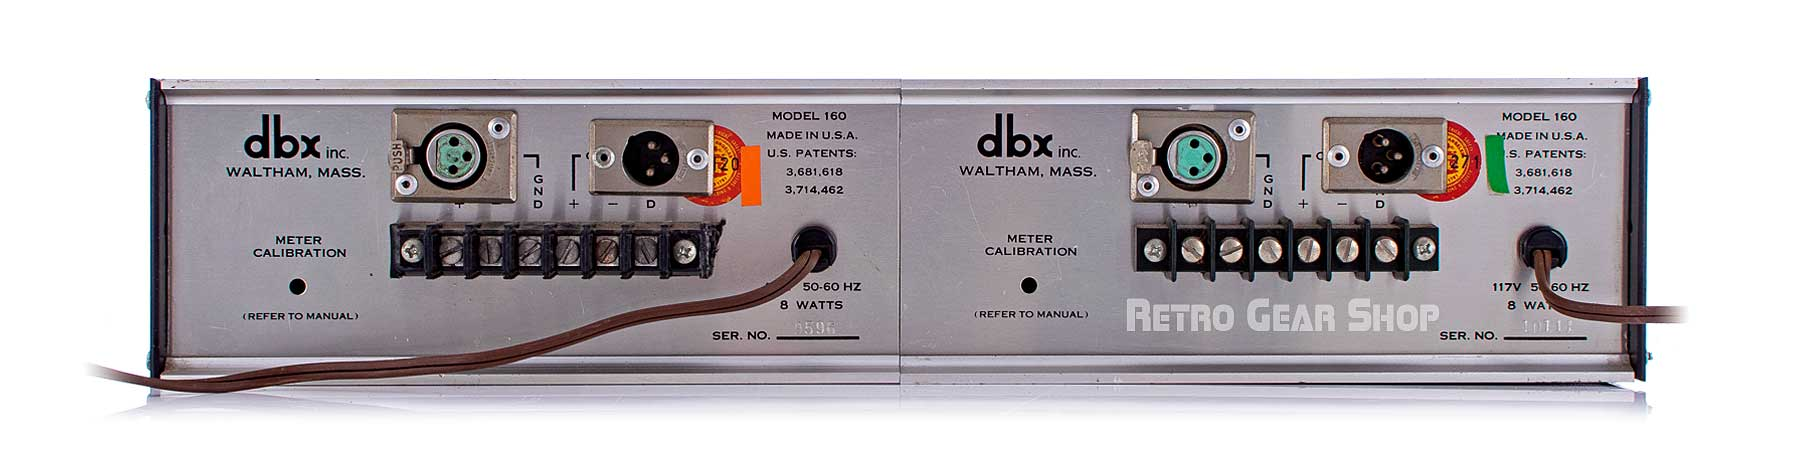 dbx 160VU Stereo Pair Rear